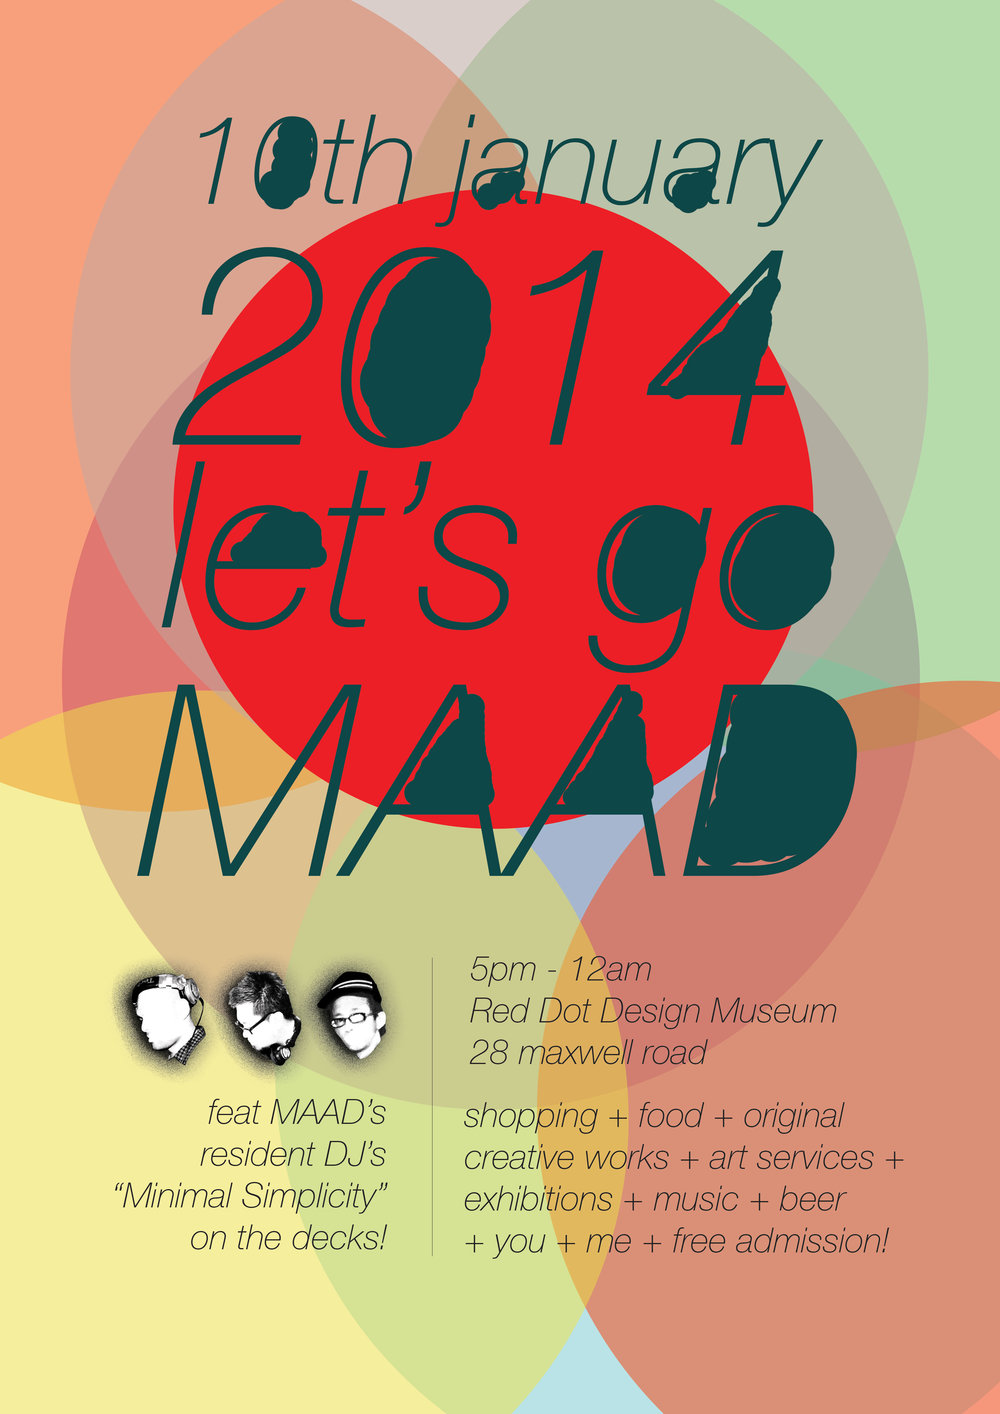 maad_Jan2014_lores_withoutsponsor.jpg